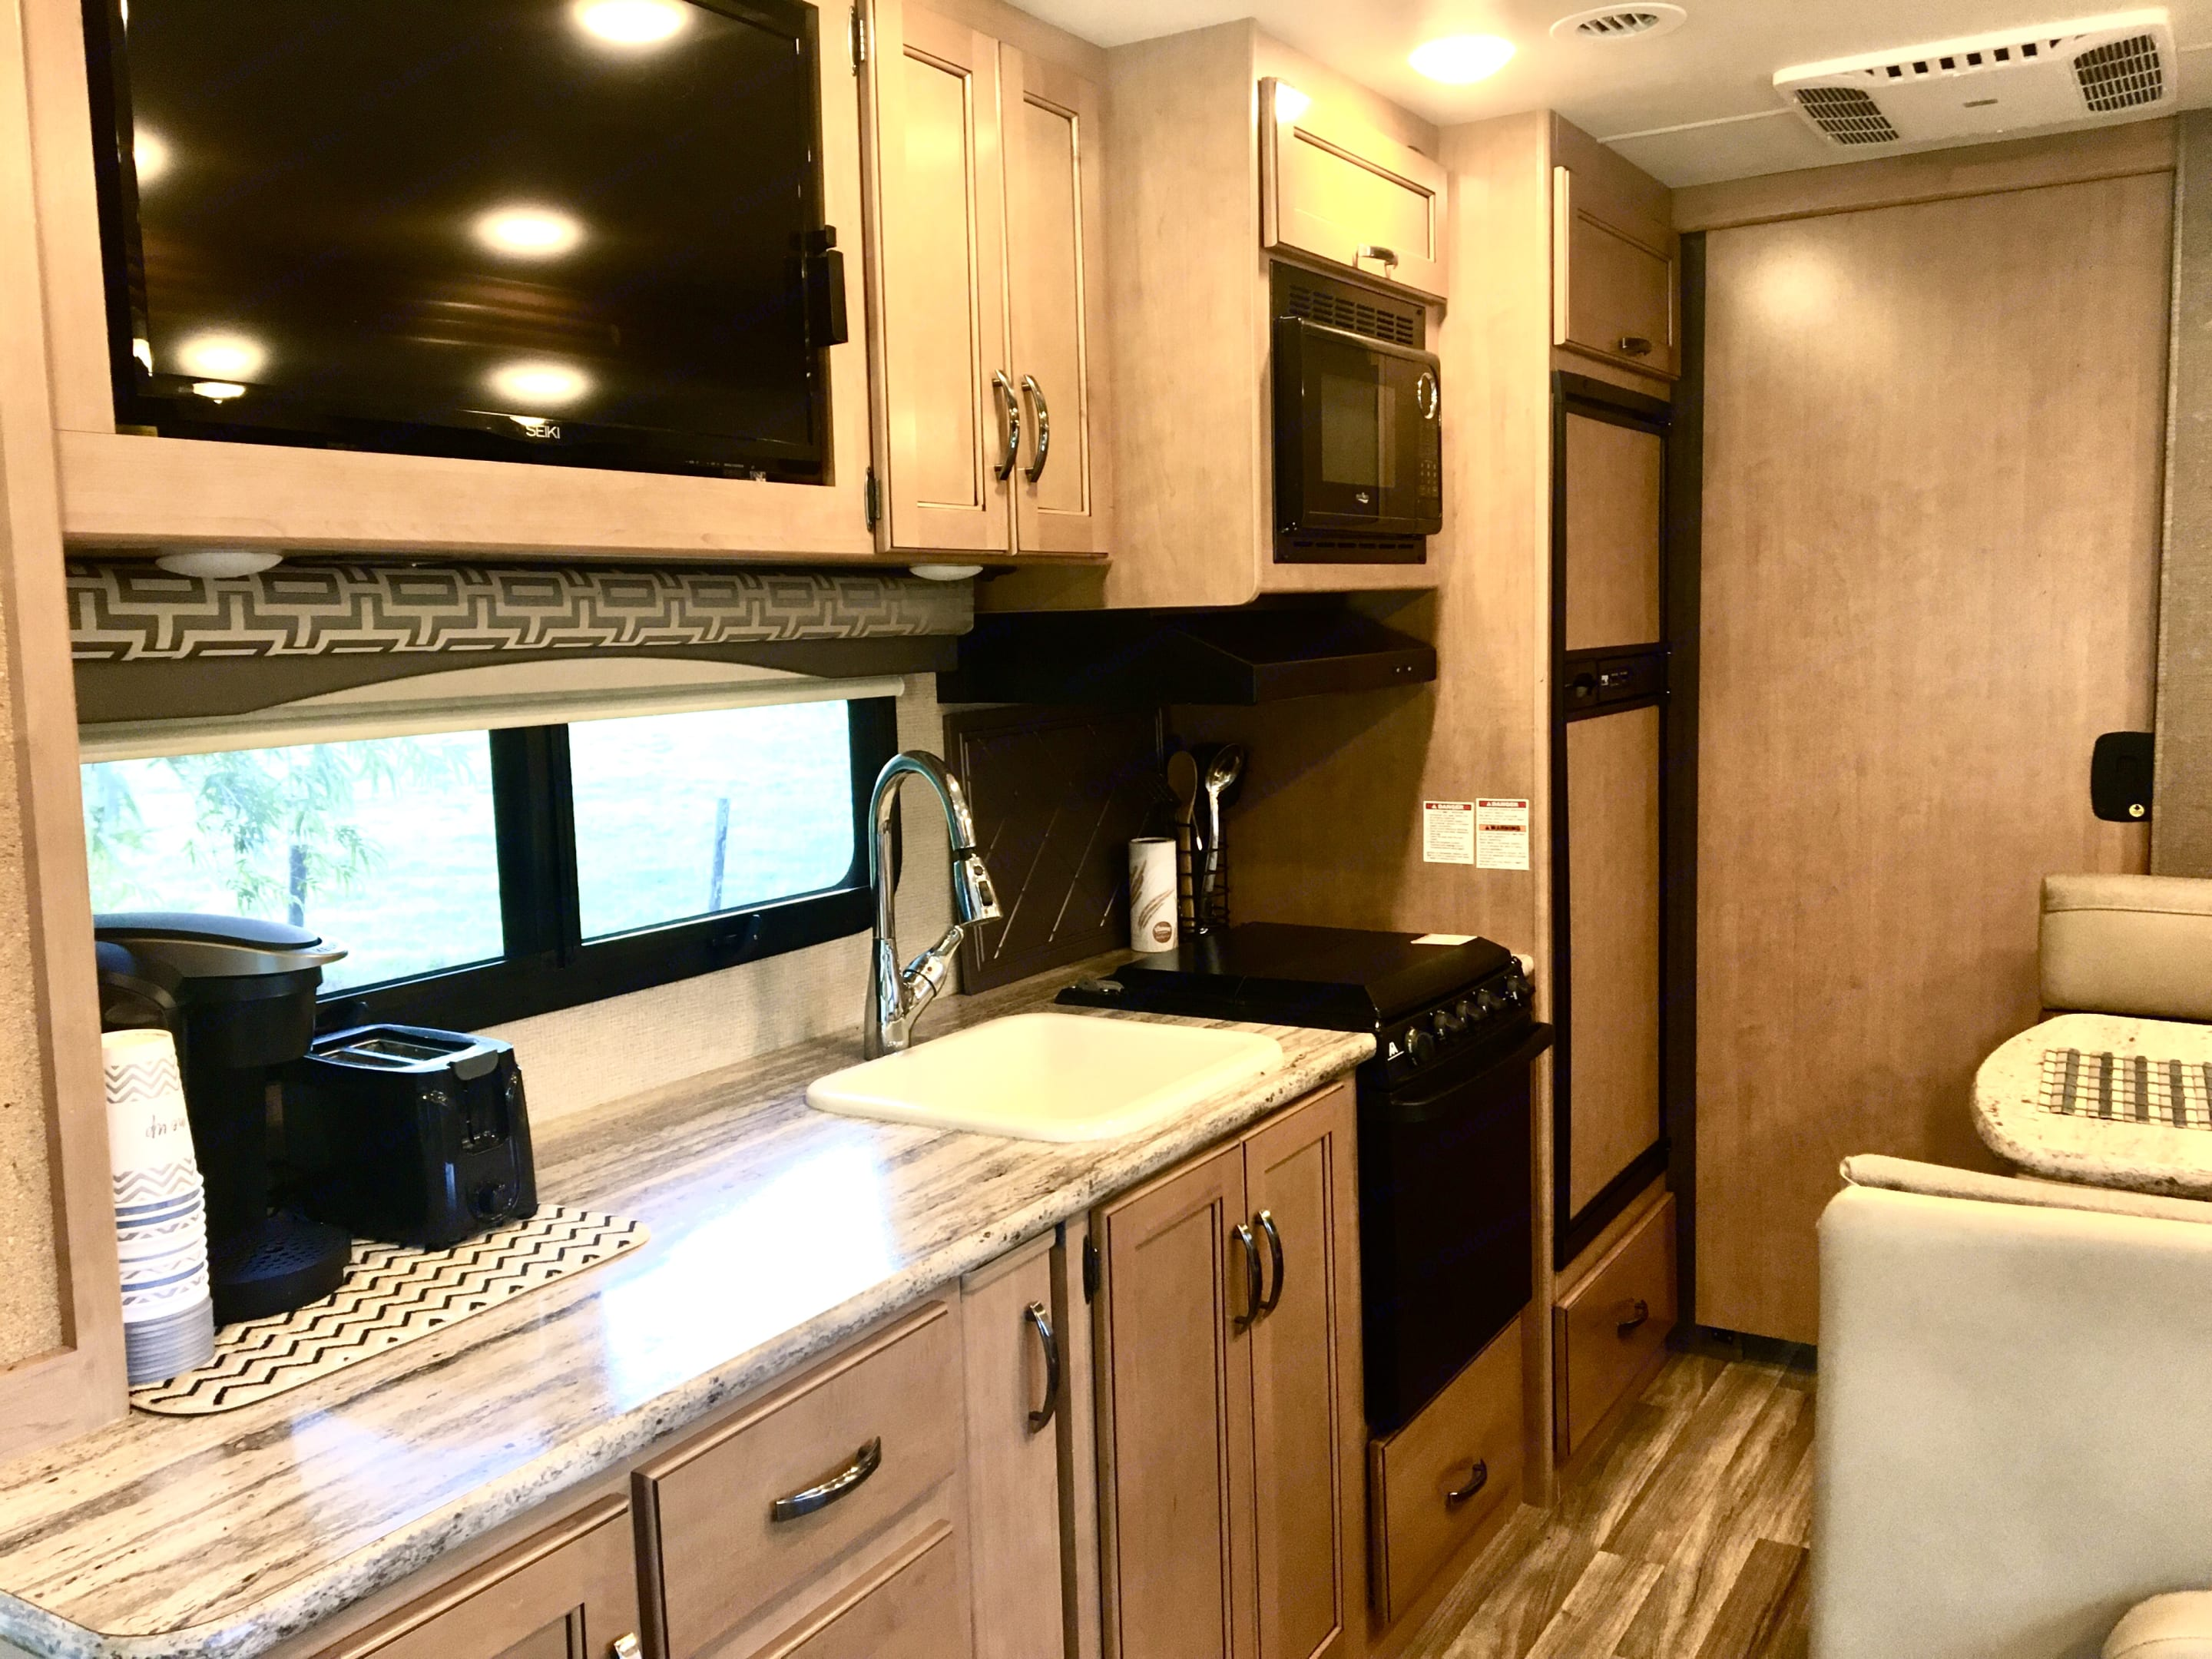 Our RV comes with a medium sized refrigerator, freezer, three-burner stove, oven, microwave, coffee maker, and a toaster. The living area has a TV.. Thor Motor Coach A.C.E 2017